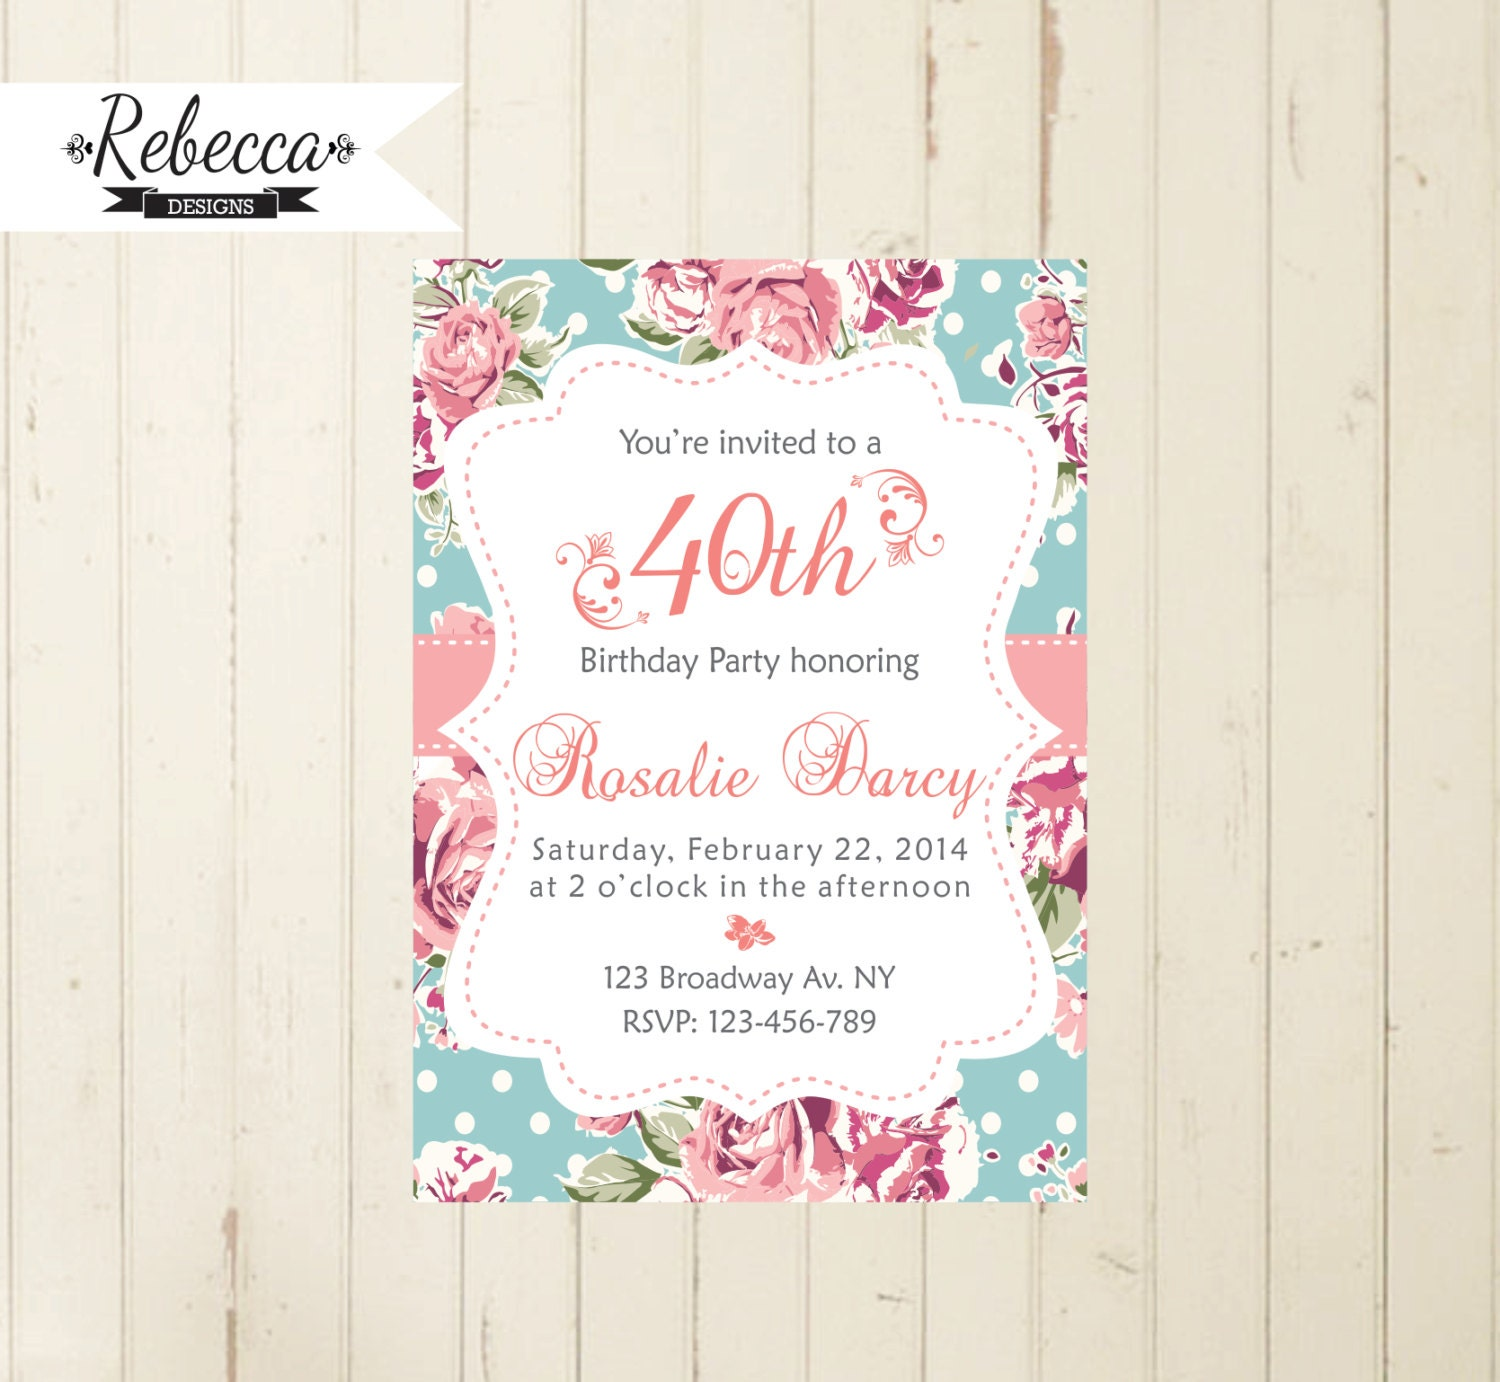 Floral birthday invitation cottage chic party tea party | Etsy